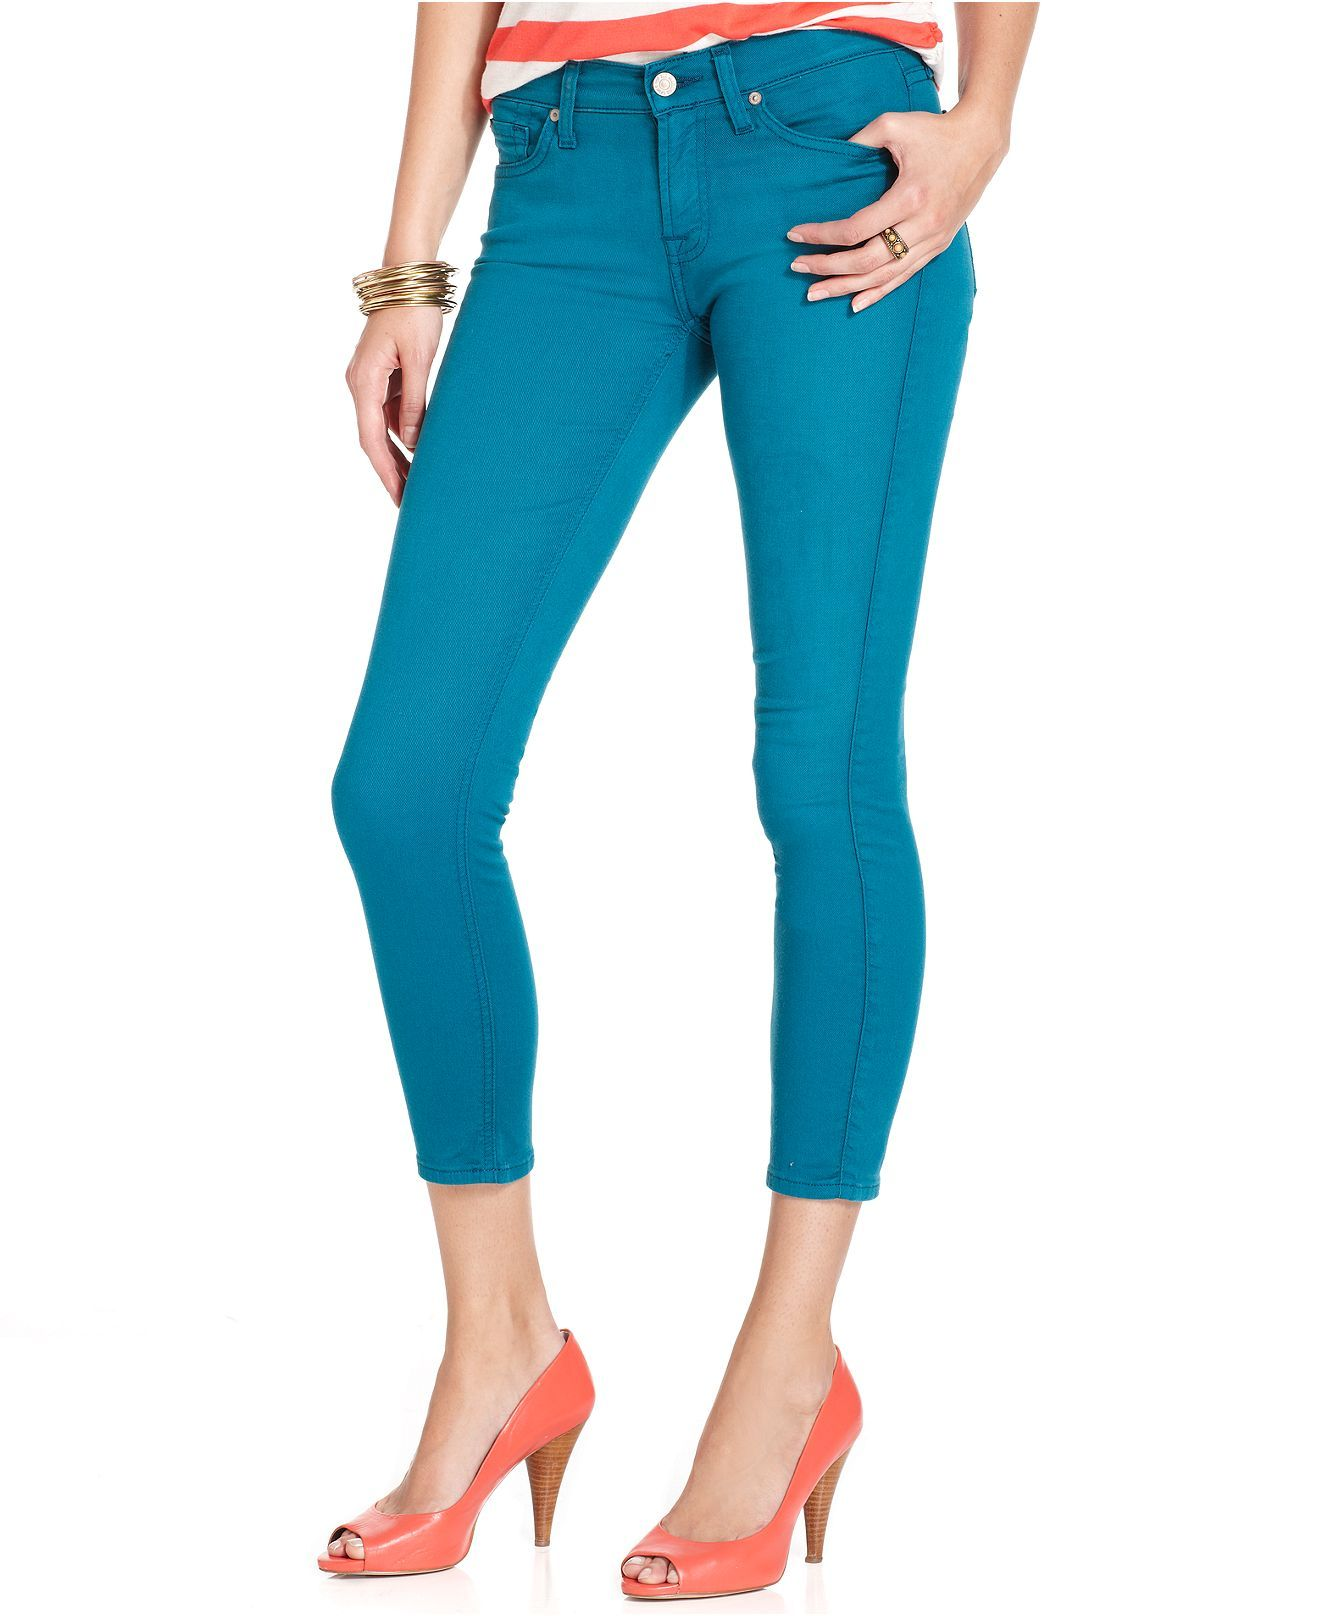 7 For All Mankind Jeans Cropped Skinny Teal Wash Colored Denim